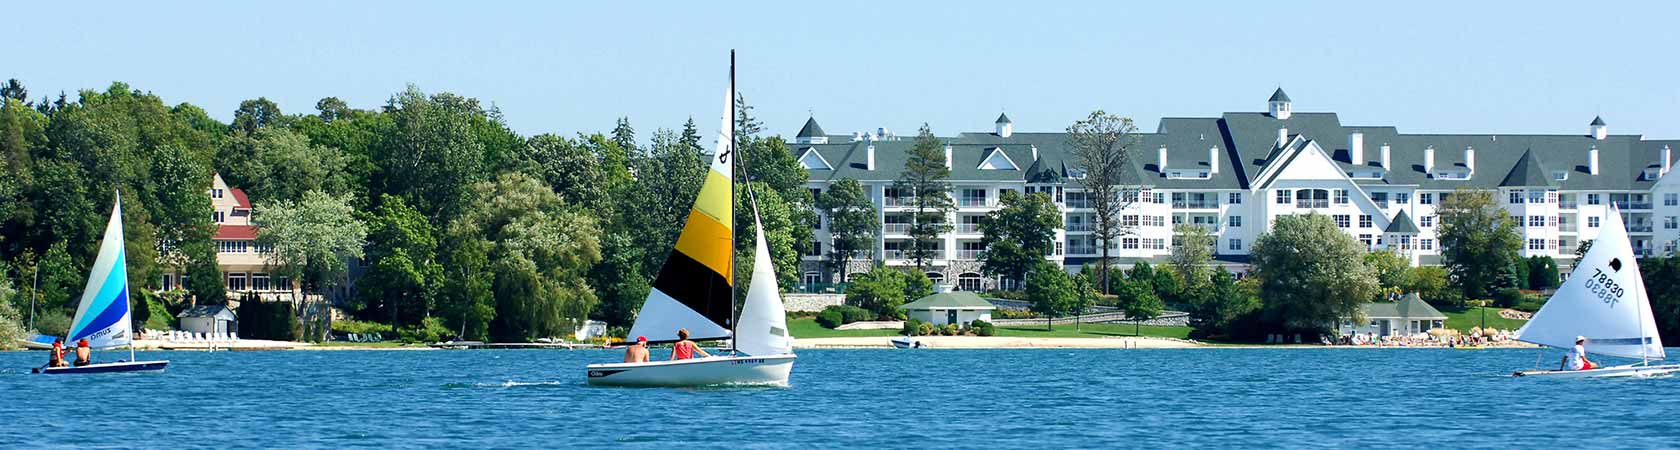 Osthoff Resort is located on tranquil Elkhart Lake in southeastern Wisconsin.